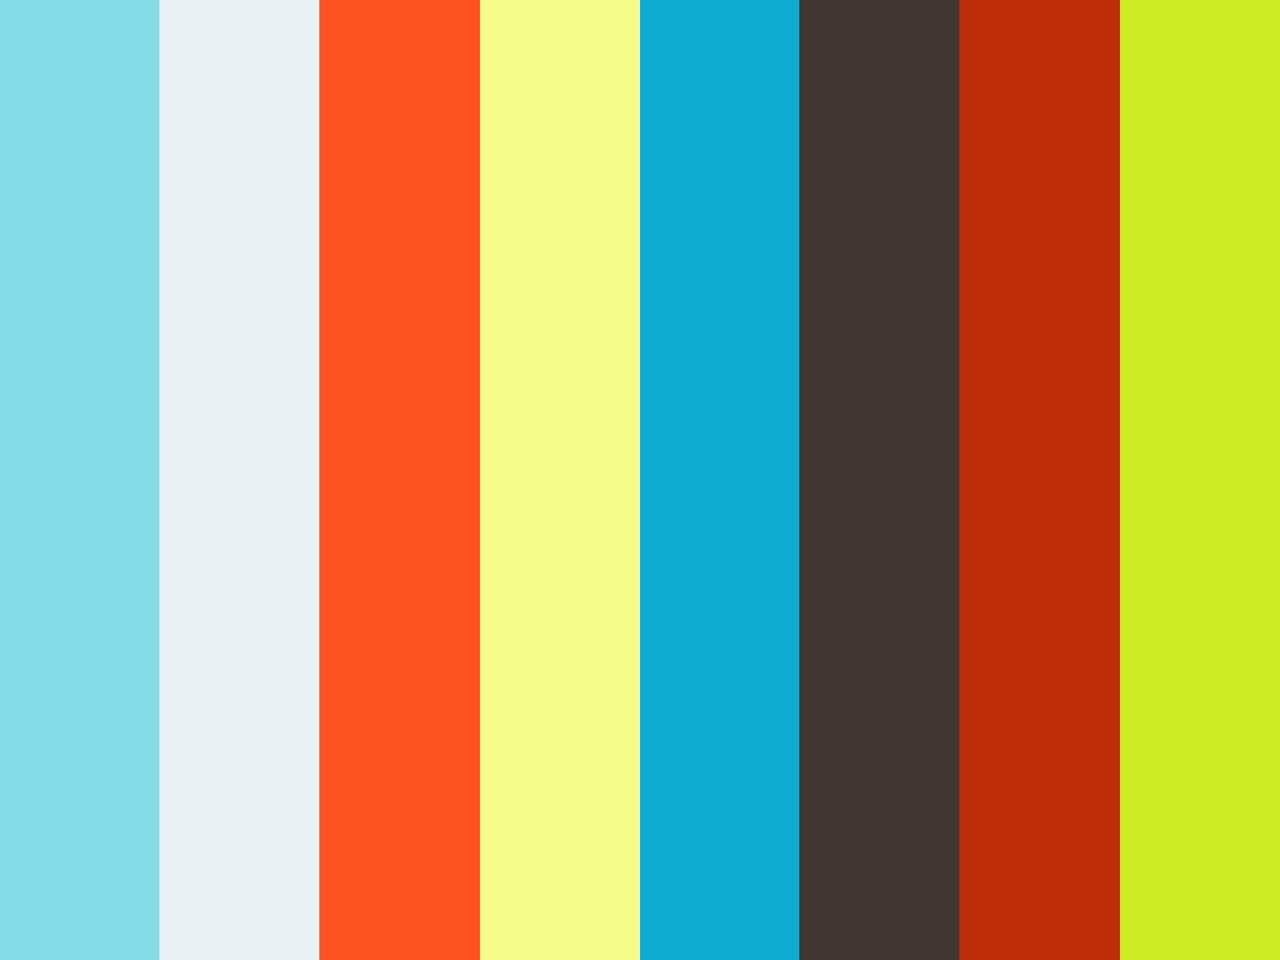 Healthcare Reform Series - Webinar 4